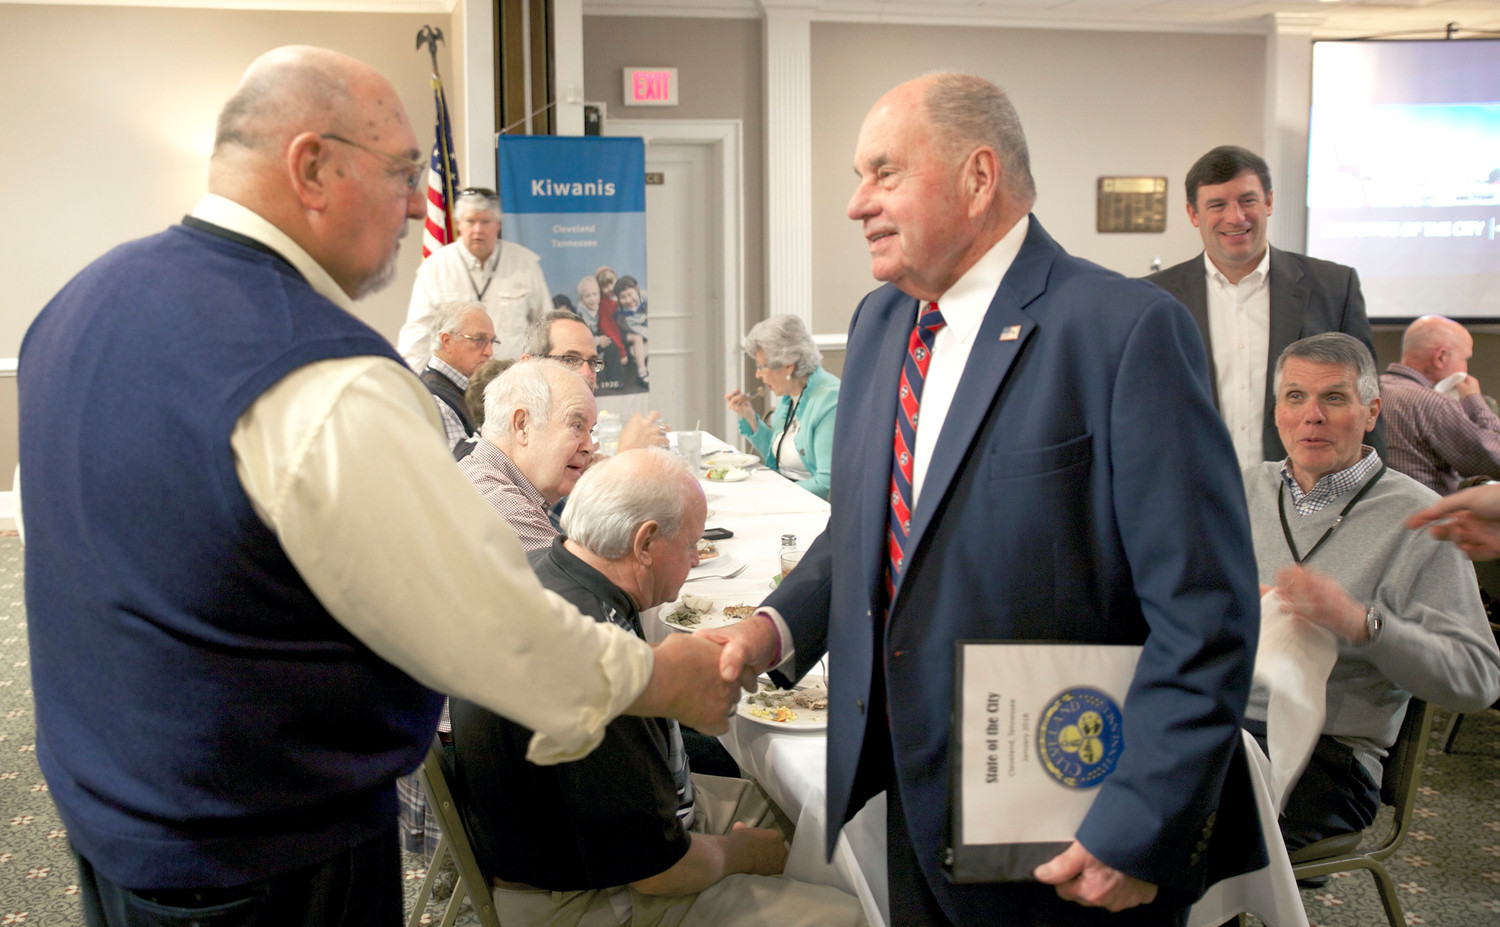 FOR YEARS, the Cleveland Kiwanis Club weekly luncheon has served as the setting for Cleveland Mayor Tom Rowland's annual State of the City address. Here, he is greeted by Doug Greene, a former Cleveland educator. In the background, at right, are Dr. Russell Dyer, director of Cleveland City Schools, who was the guest of Charlie Cogdill, a retired educator who is also a Kiwanis Club member.